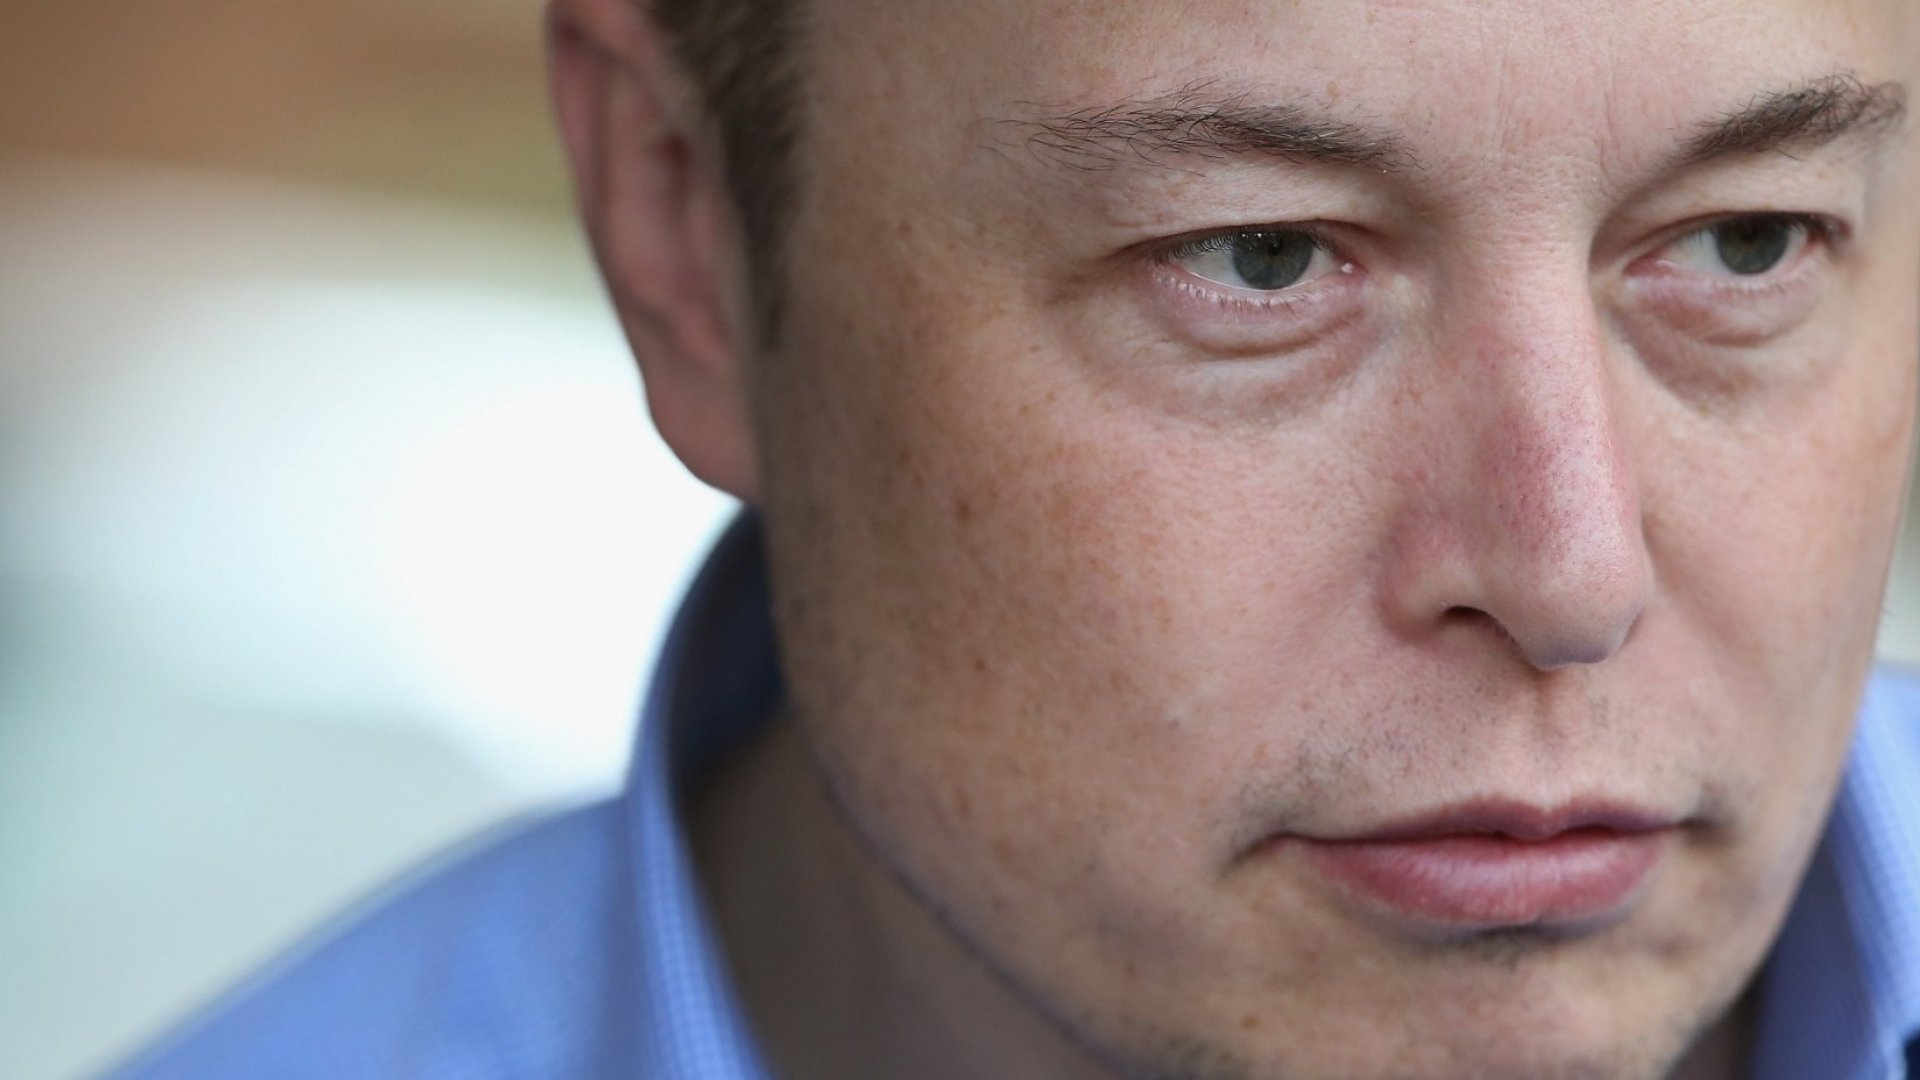 In SEC Deal, Elon Musk Steps Down as Tesla Chair for 3 Years. If He'd Faced Reality, It Could Have Been 2